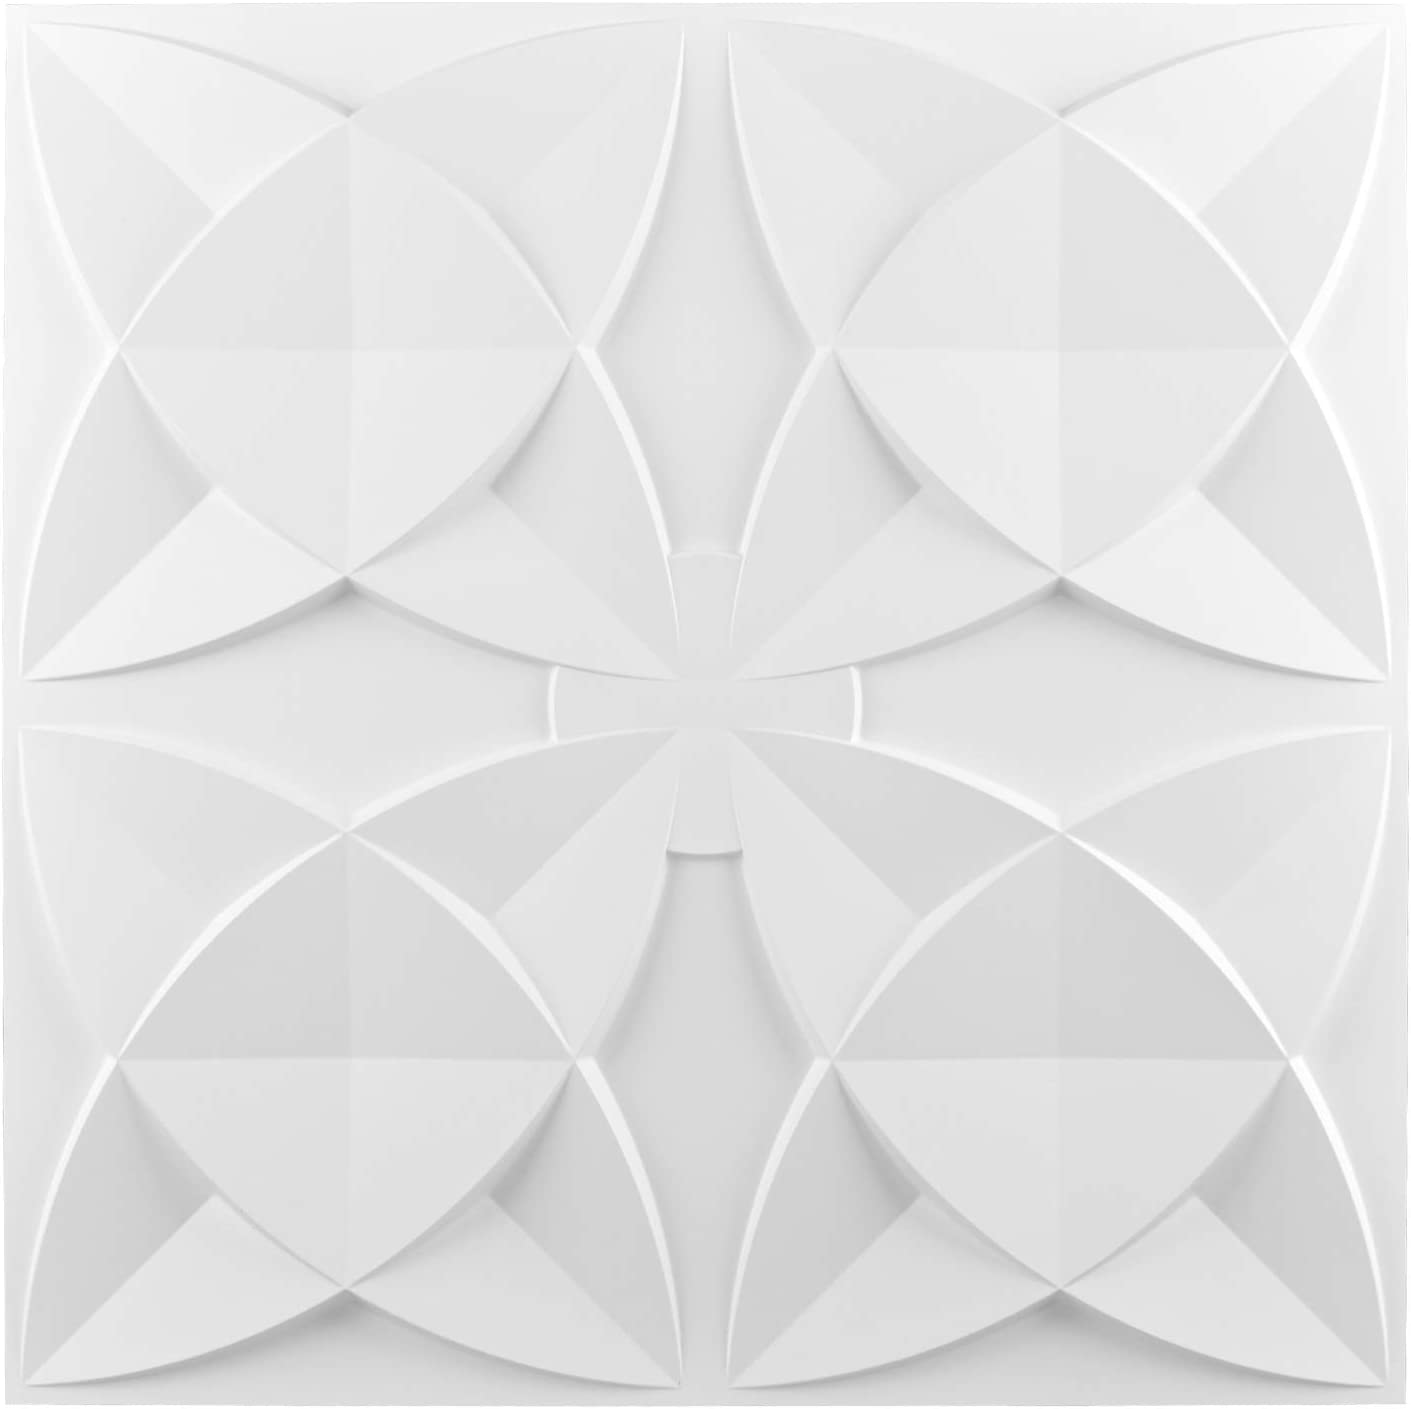 Art3d Decorative Drop Ceiling Tile 2x2 Pack of 12pcs, Glue up Ceiling Panel Square Relief in Matt White